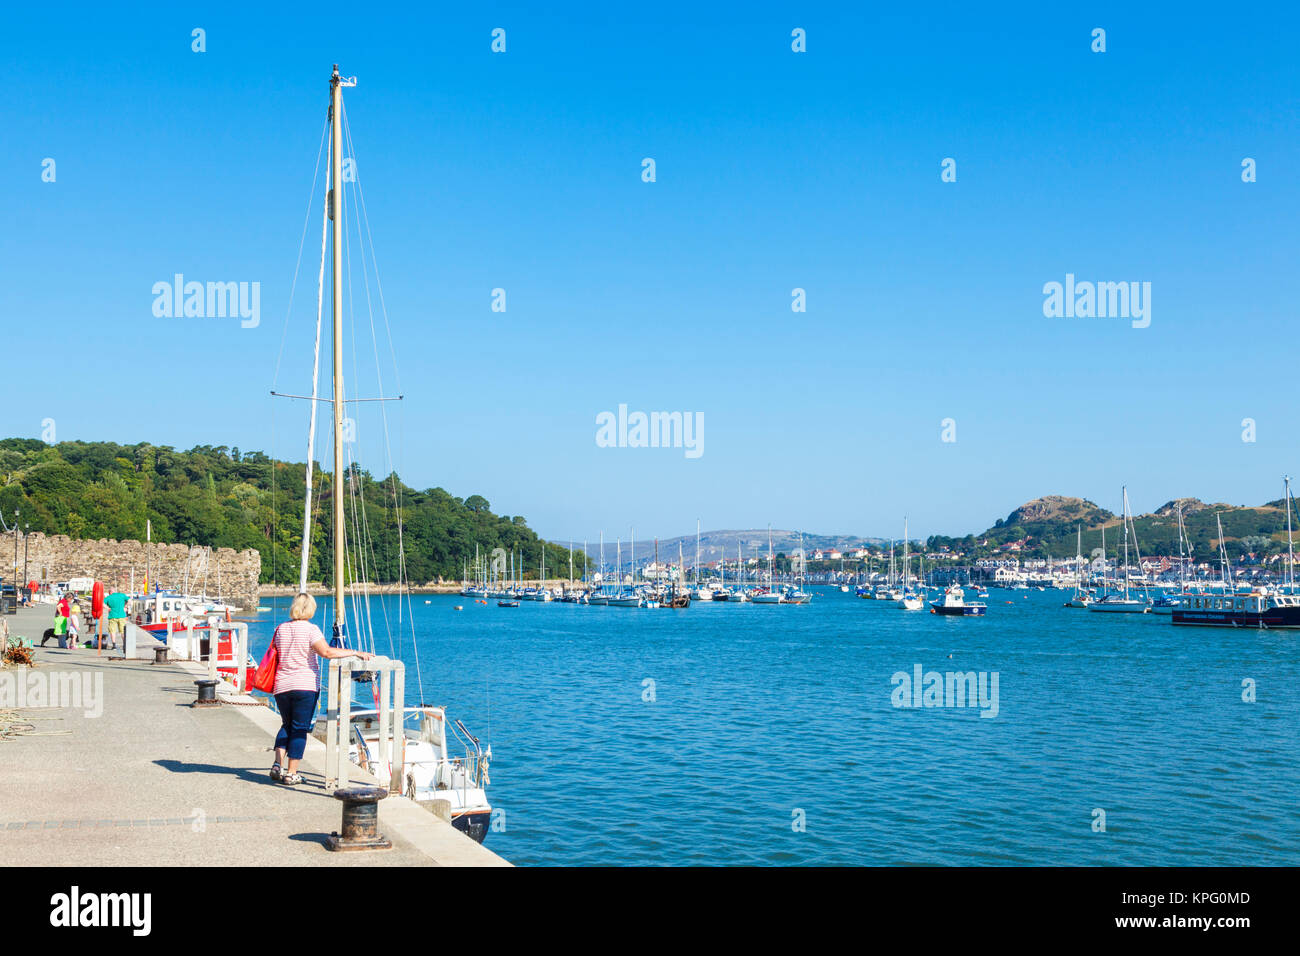 North wales conway north wales conwy north wales tourists and holidaymakers walking along the quayside harbour wall - Stock Image